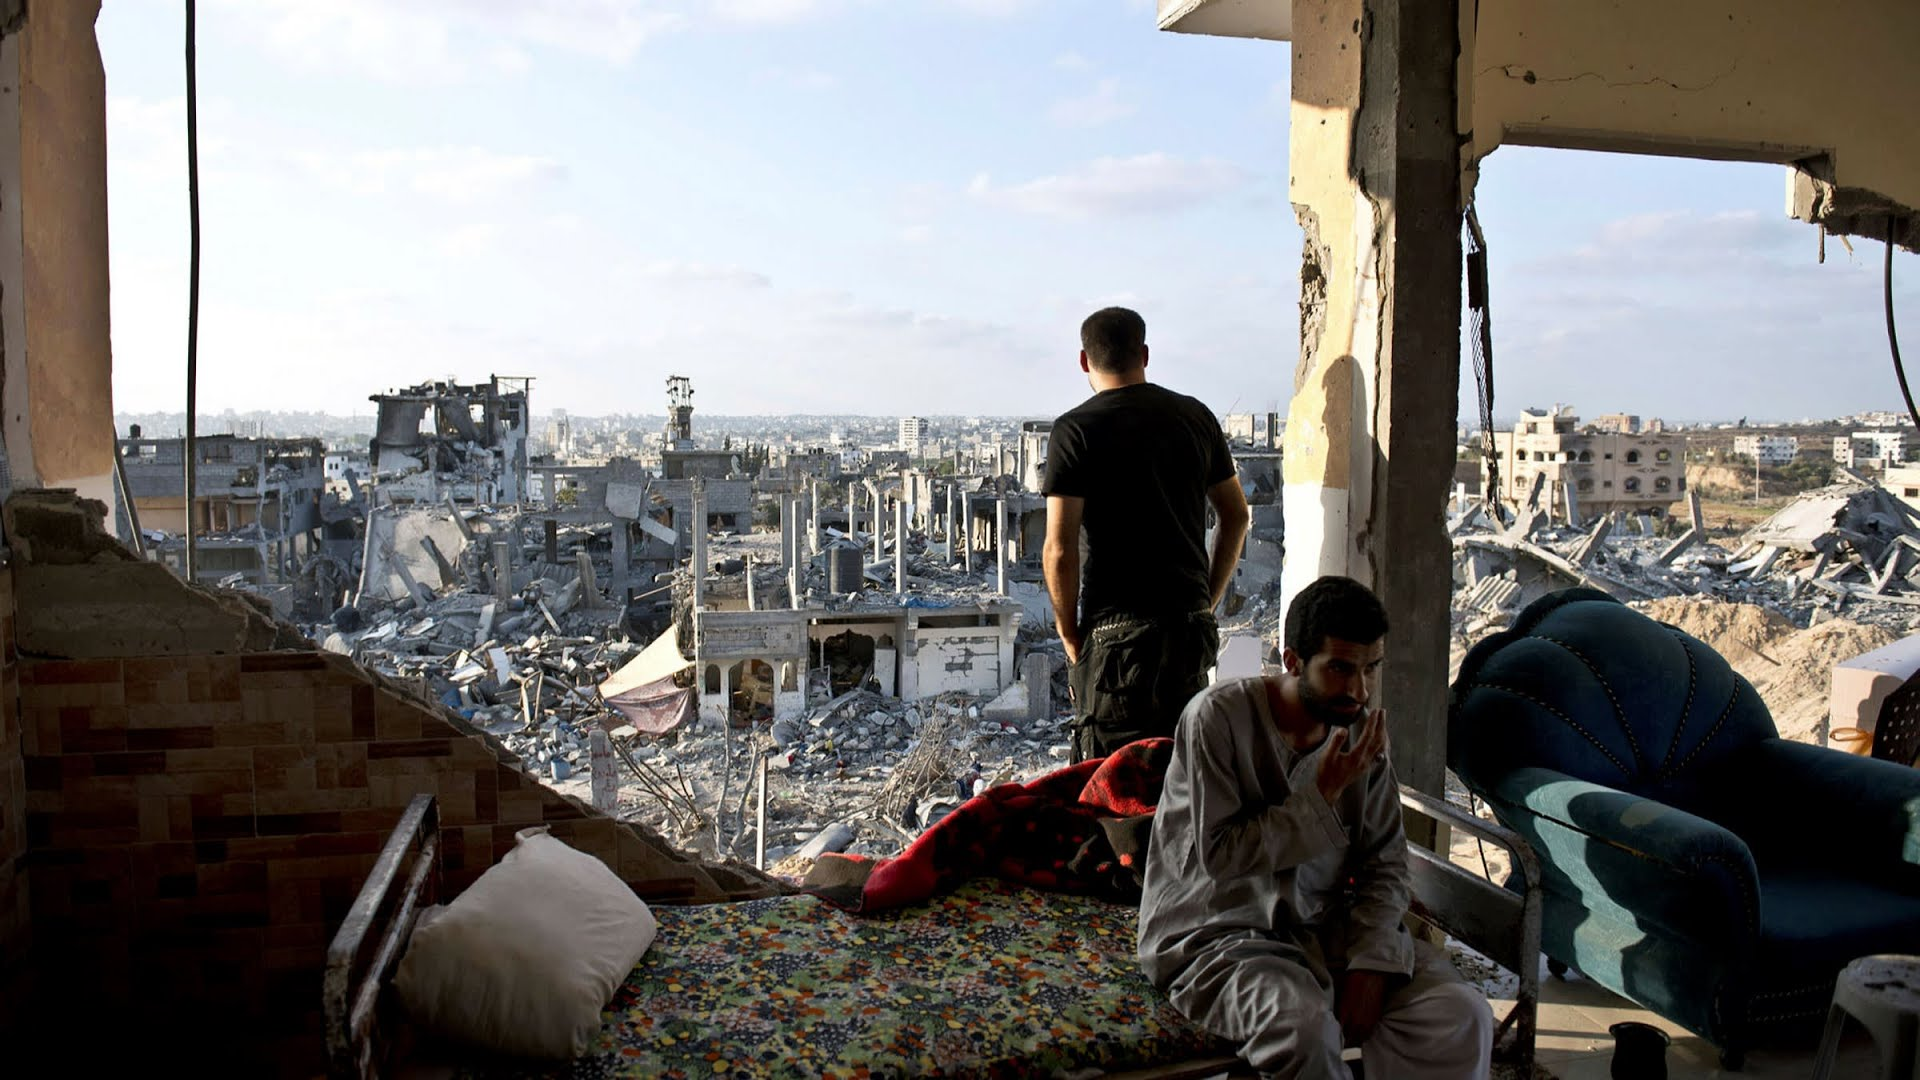 A destroyed apartment building in the Gaza Strip in 2014. Israel bombed the Gaza Strip for 51 days that year